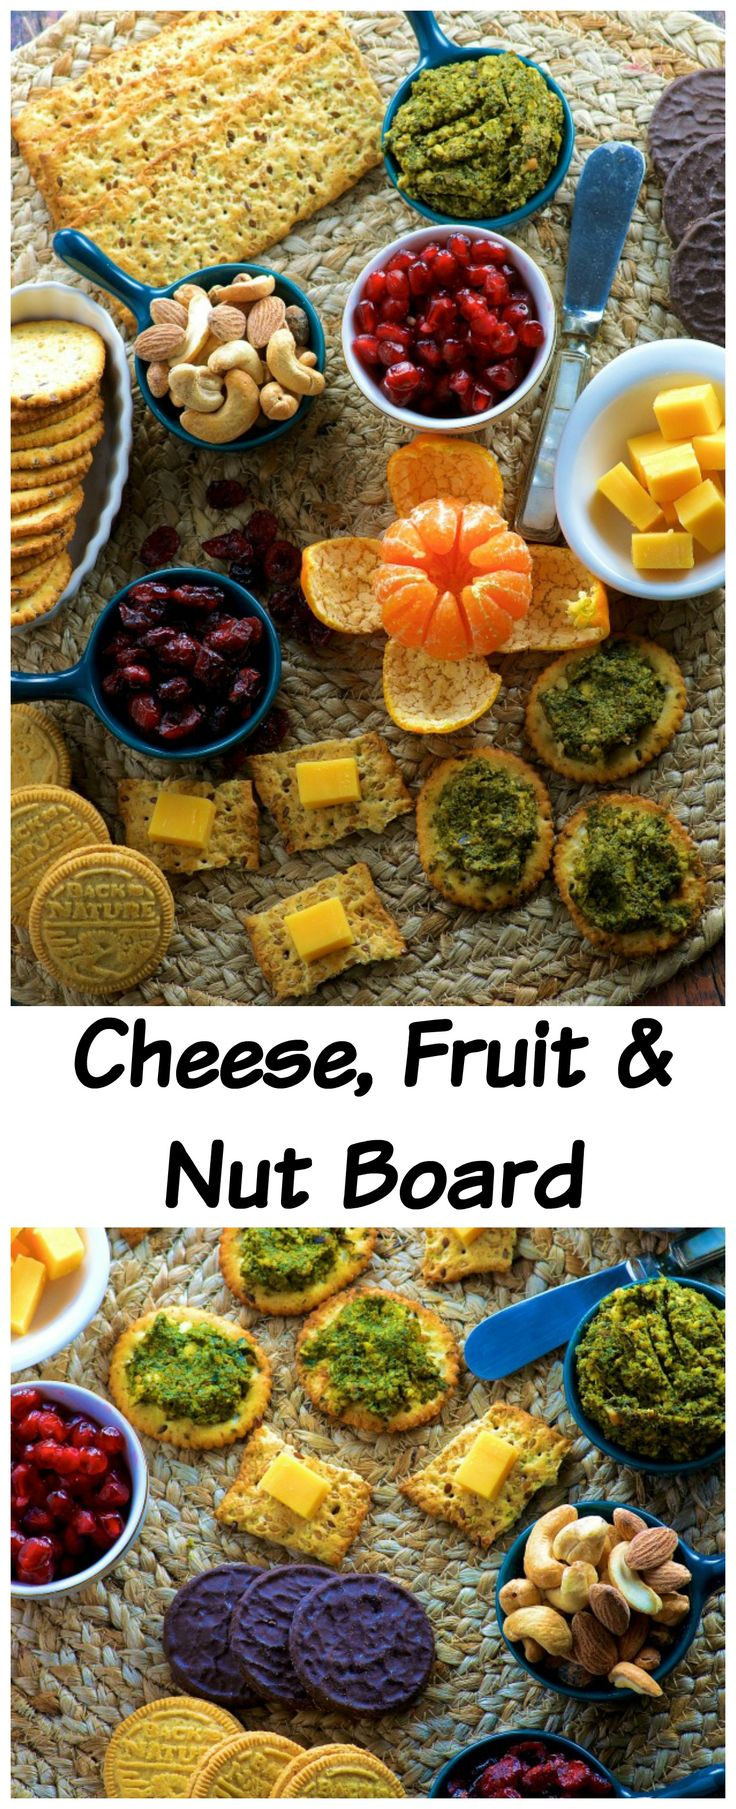 Nut, Fruit and Cheese Board